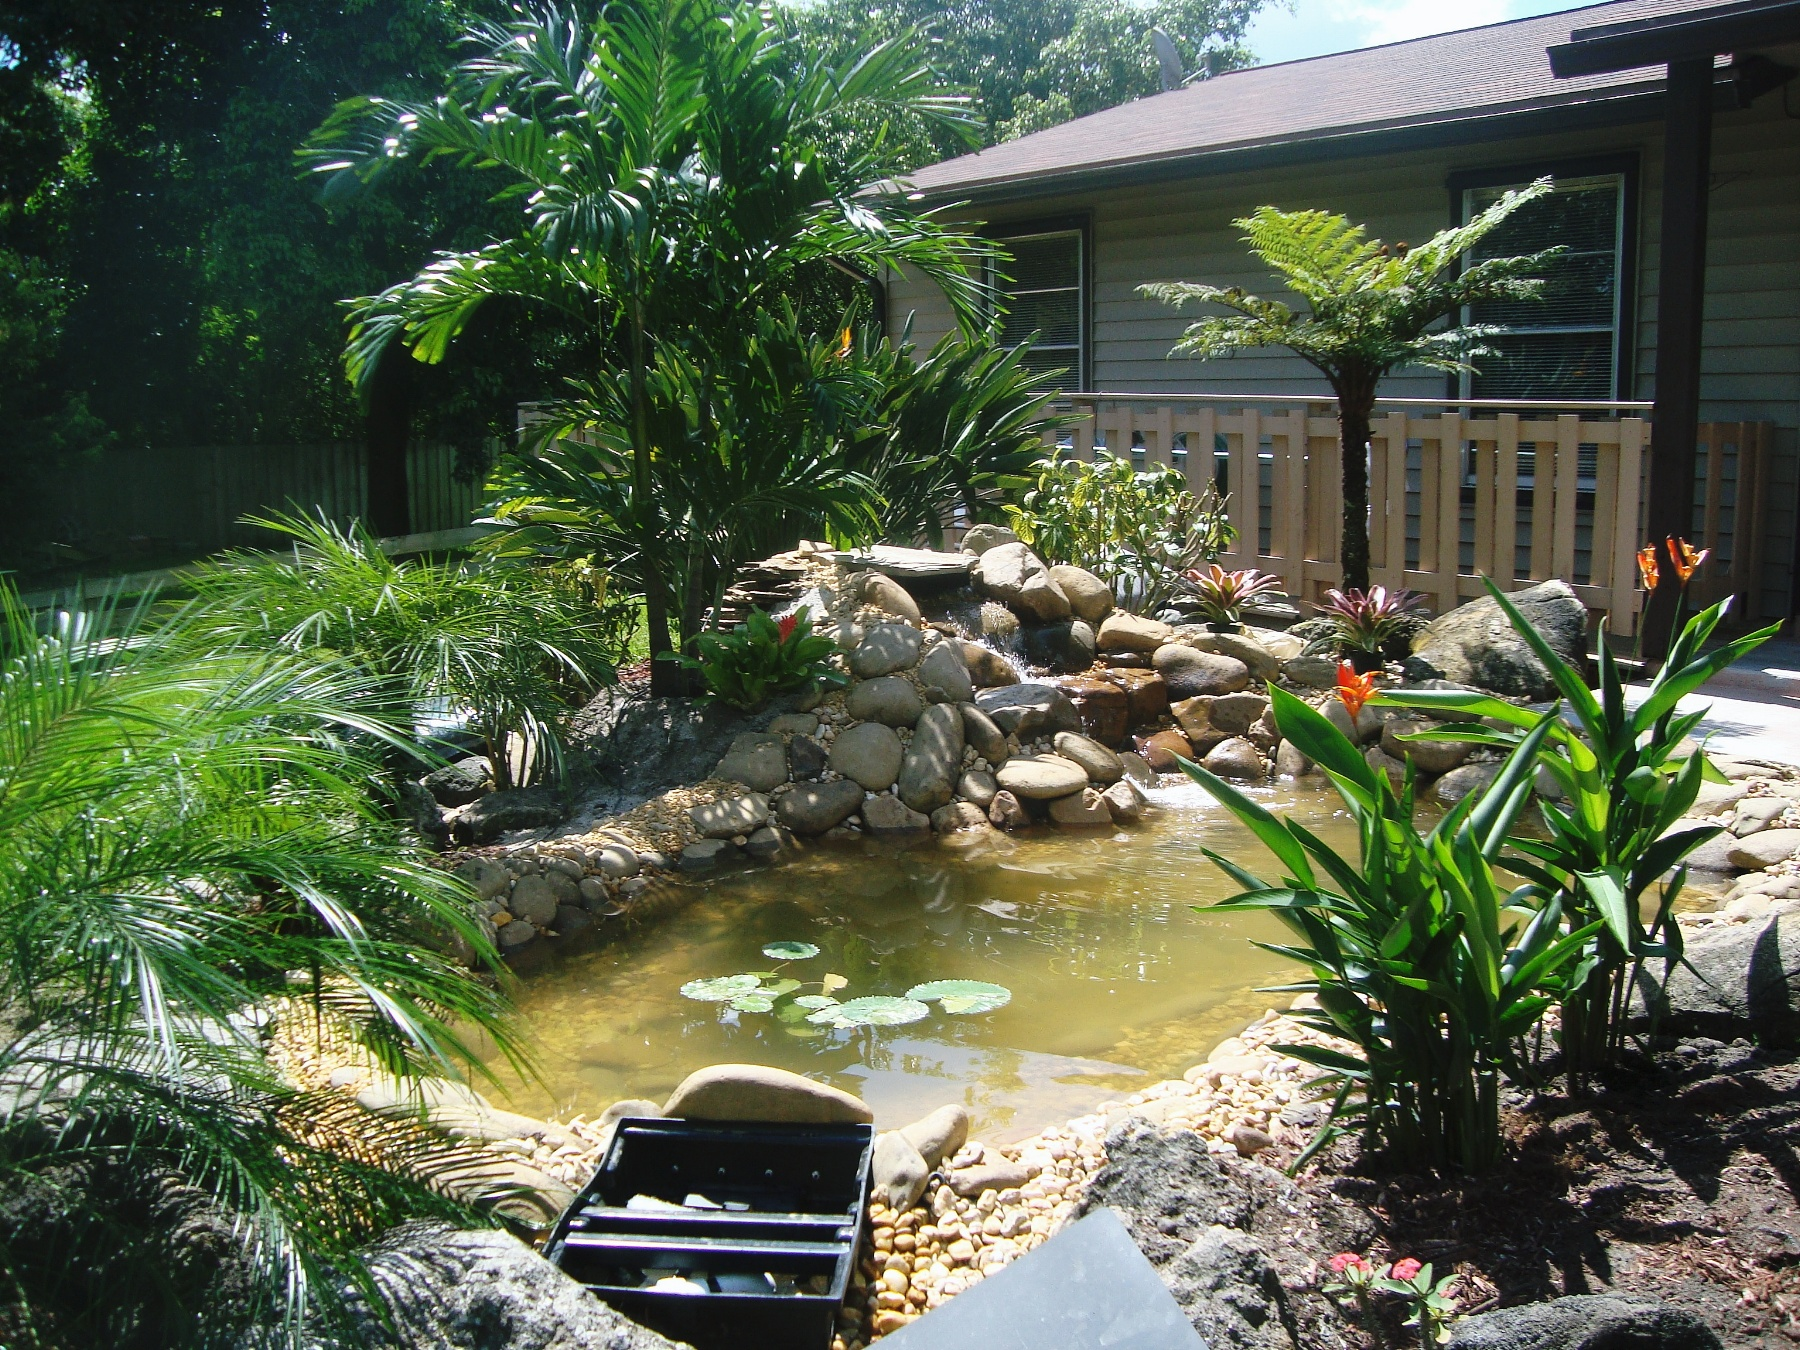 Scottsproserv 39 s blog lanscaping design lawncare Kio ponds